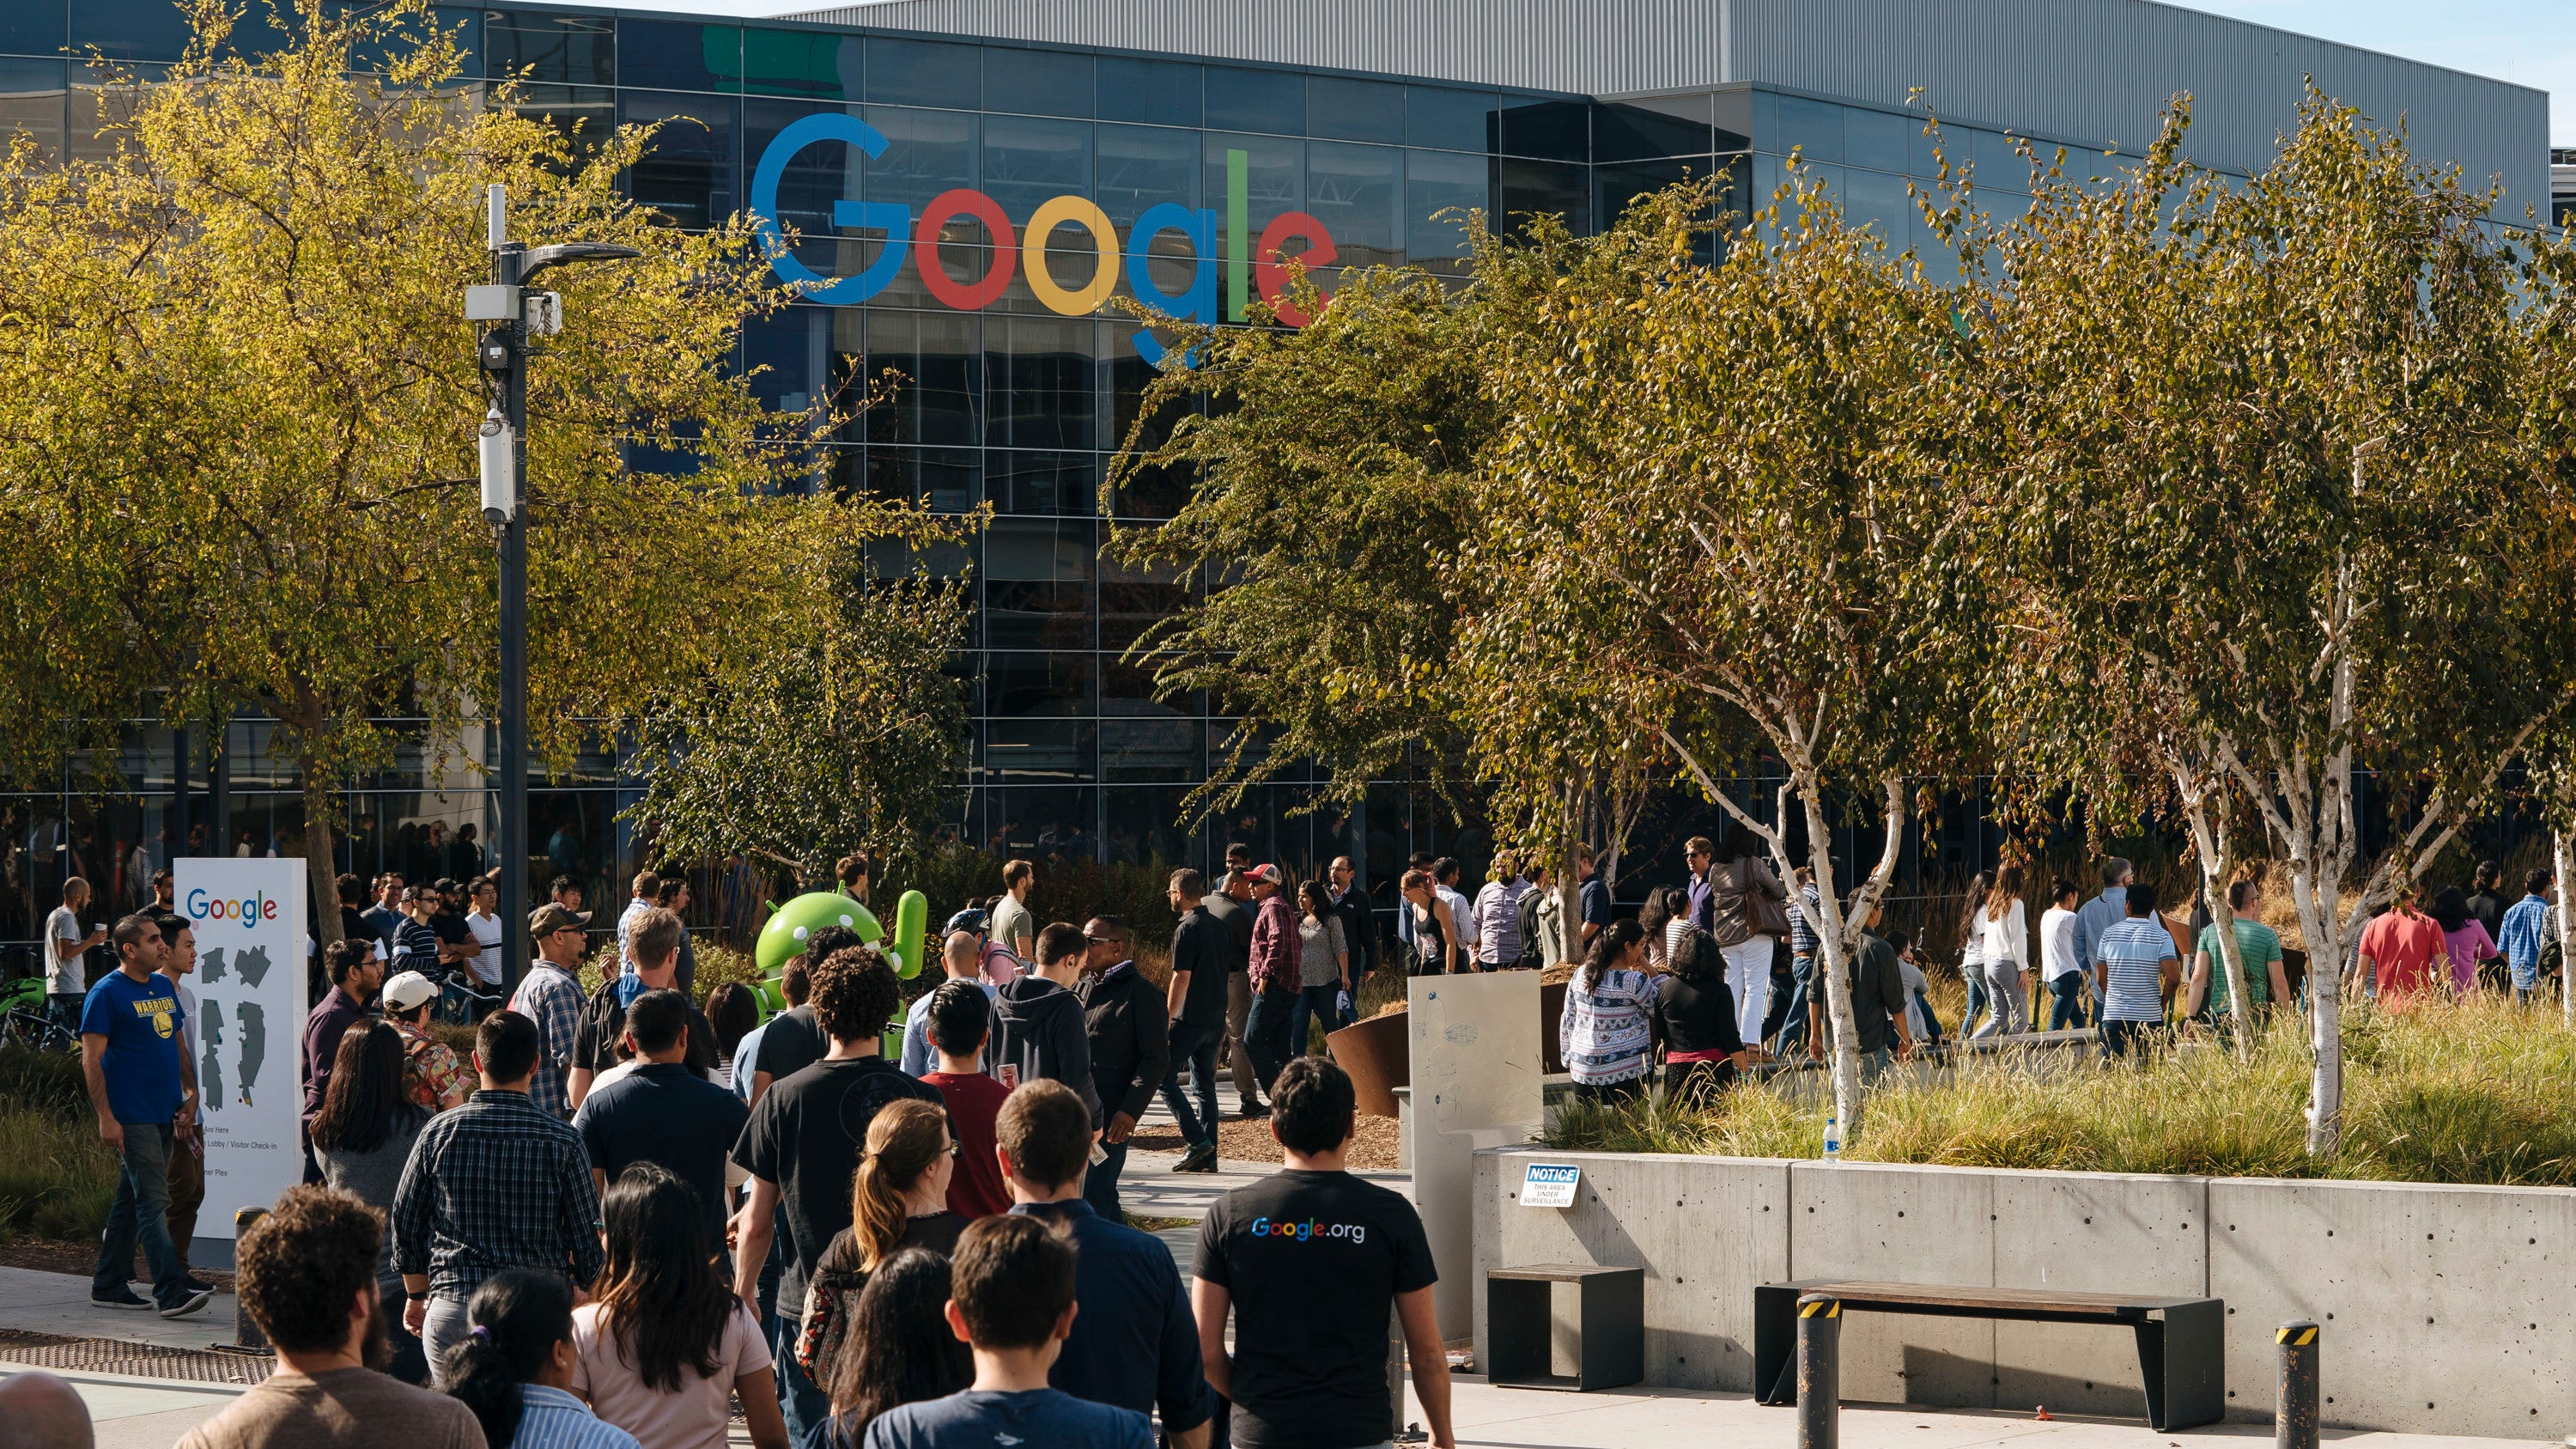 Google Workers Protest Alleged Company Retaliation Six Months After Massive Walkout